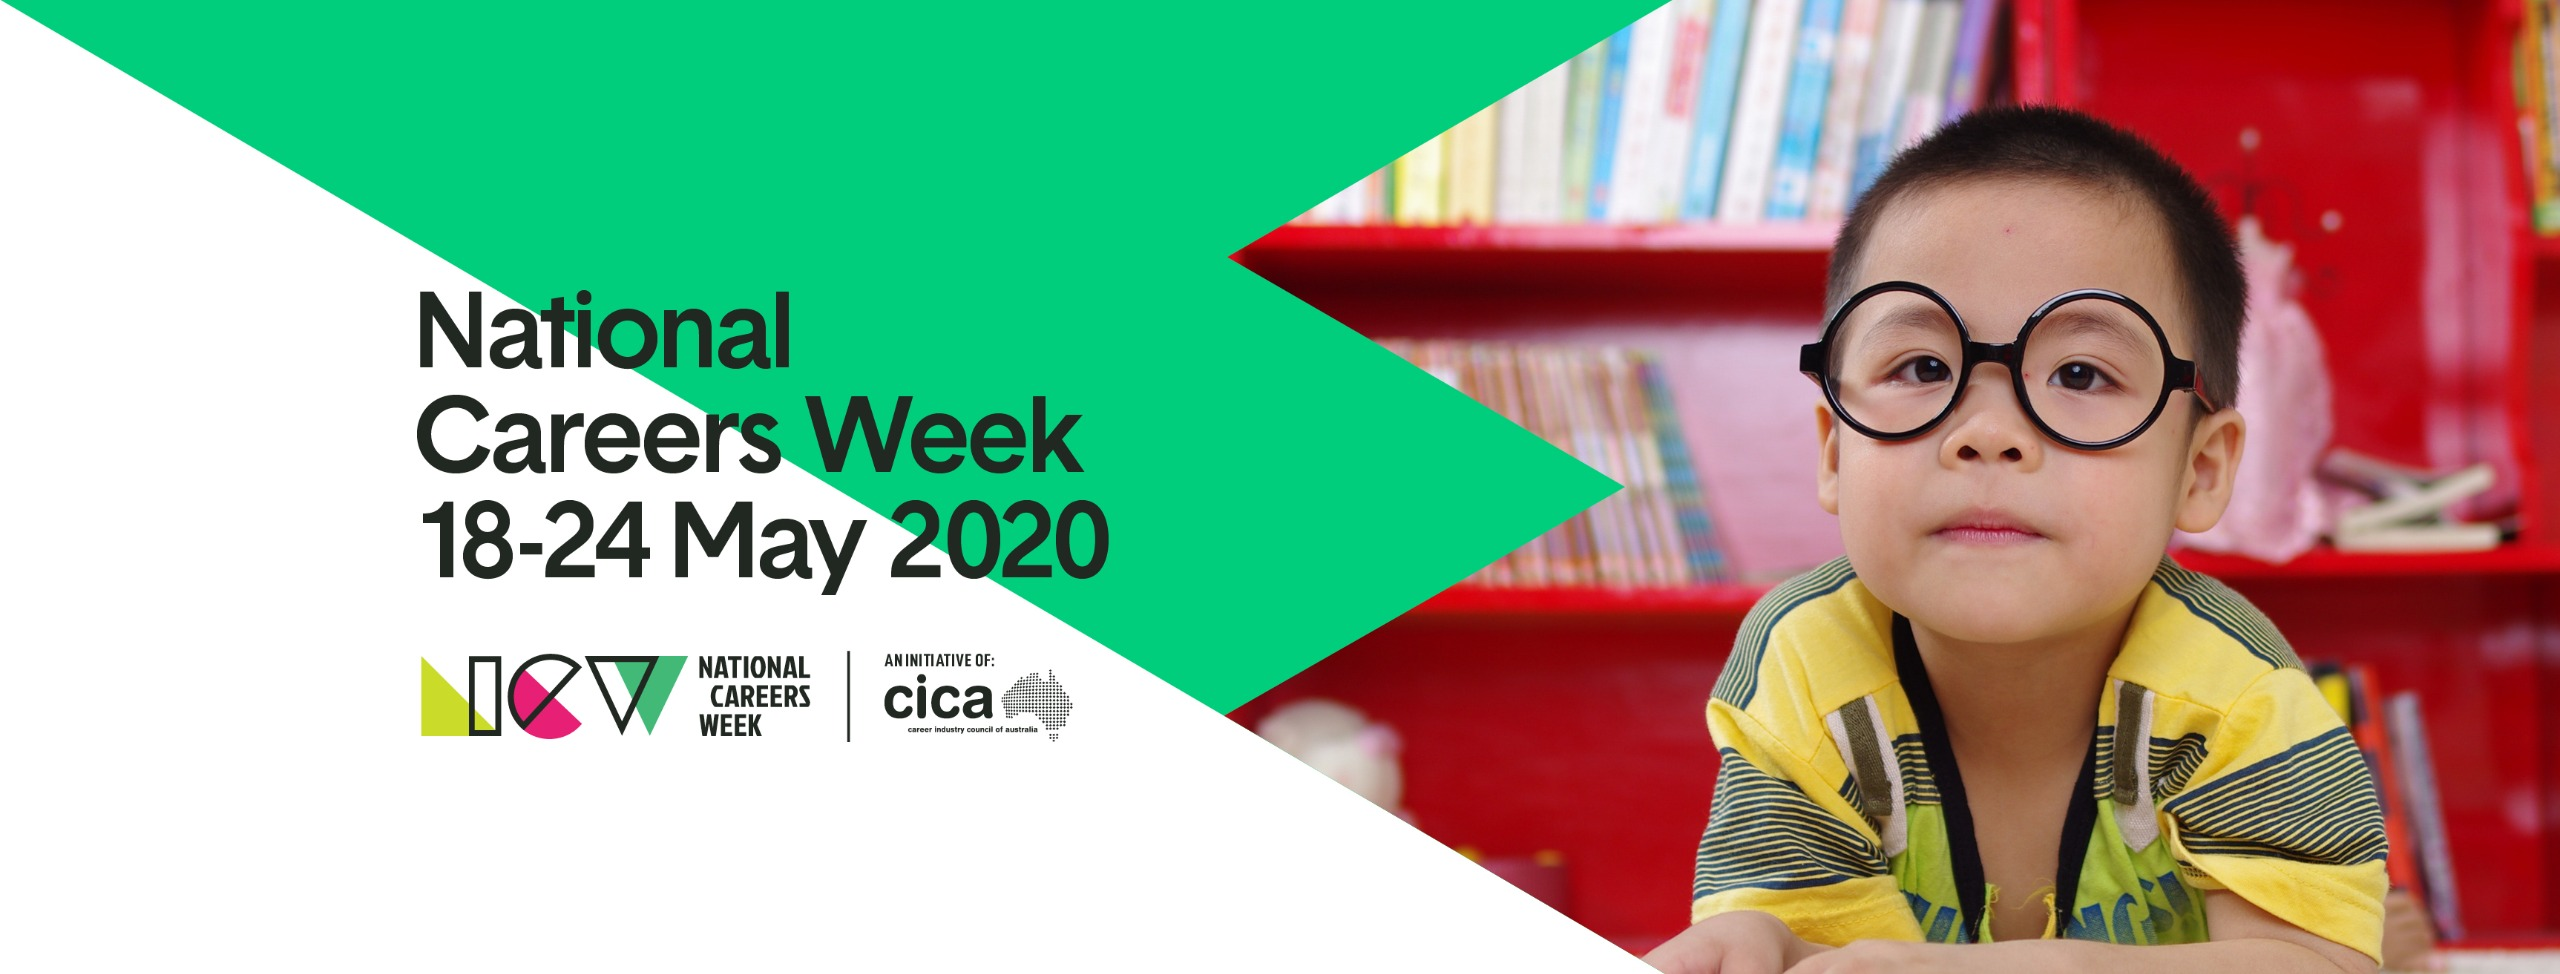 National Careers Week banner image